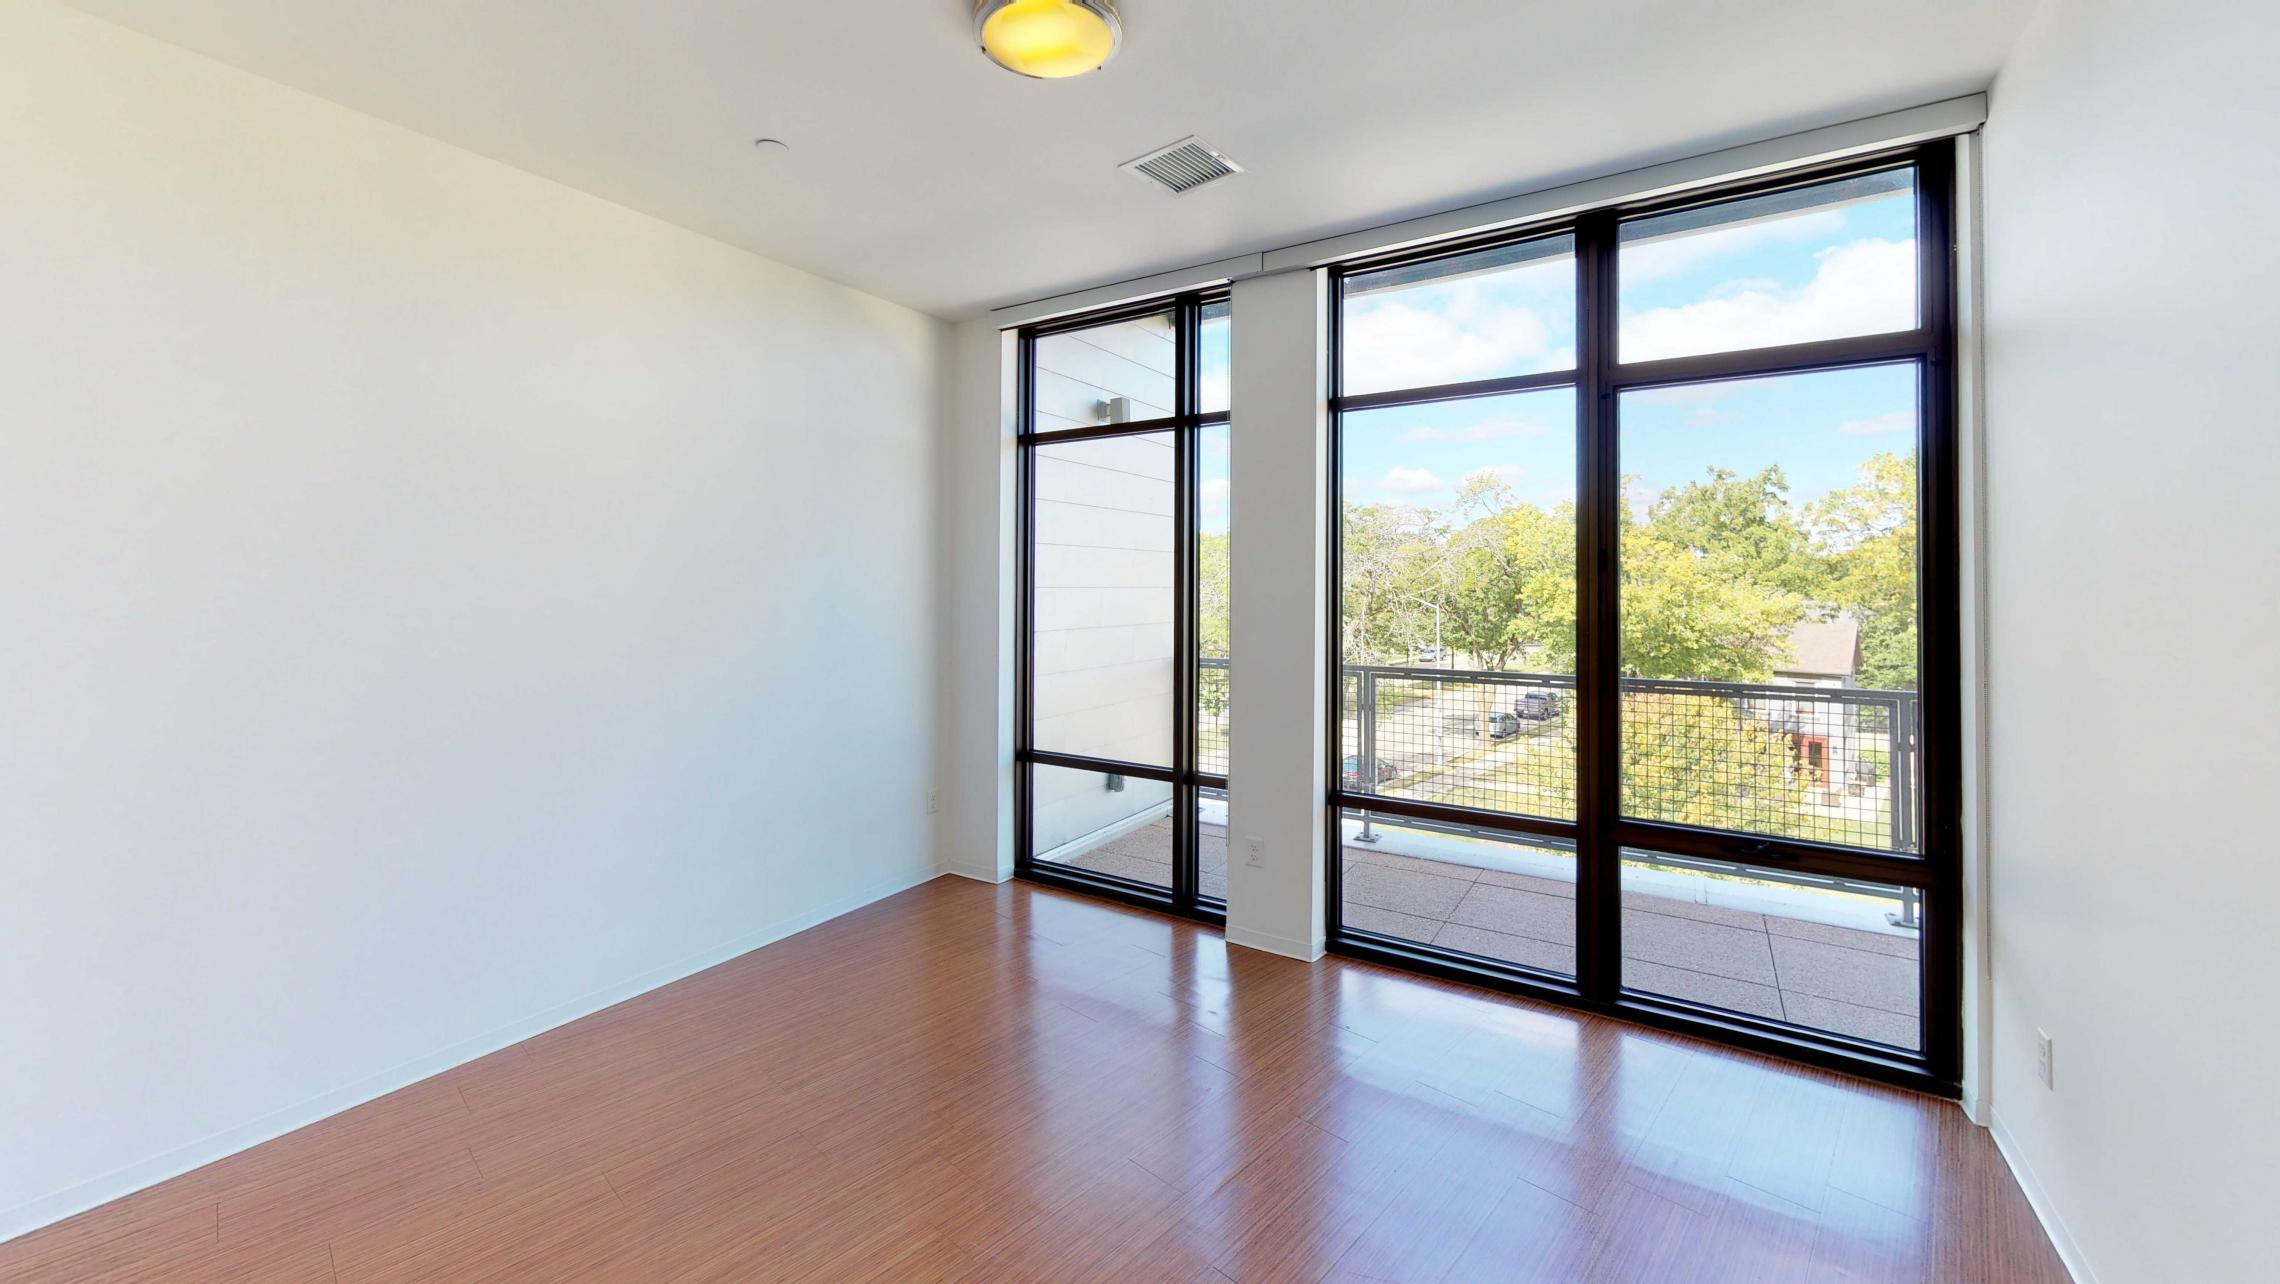 SEVEN27-Apartment-312-Modern-Upscale-Views-City-Downtown-Madison-Lake-Terrace-Living Room.jpg